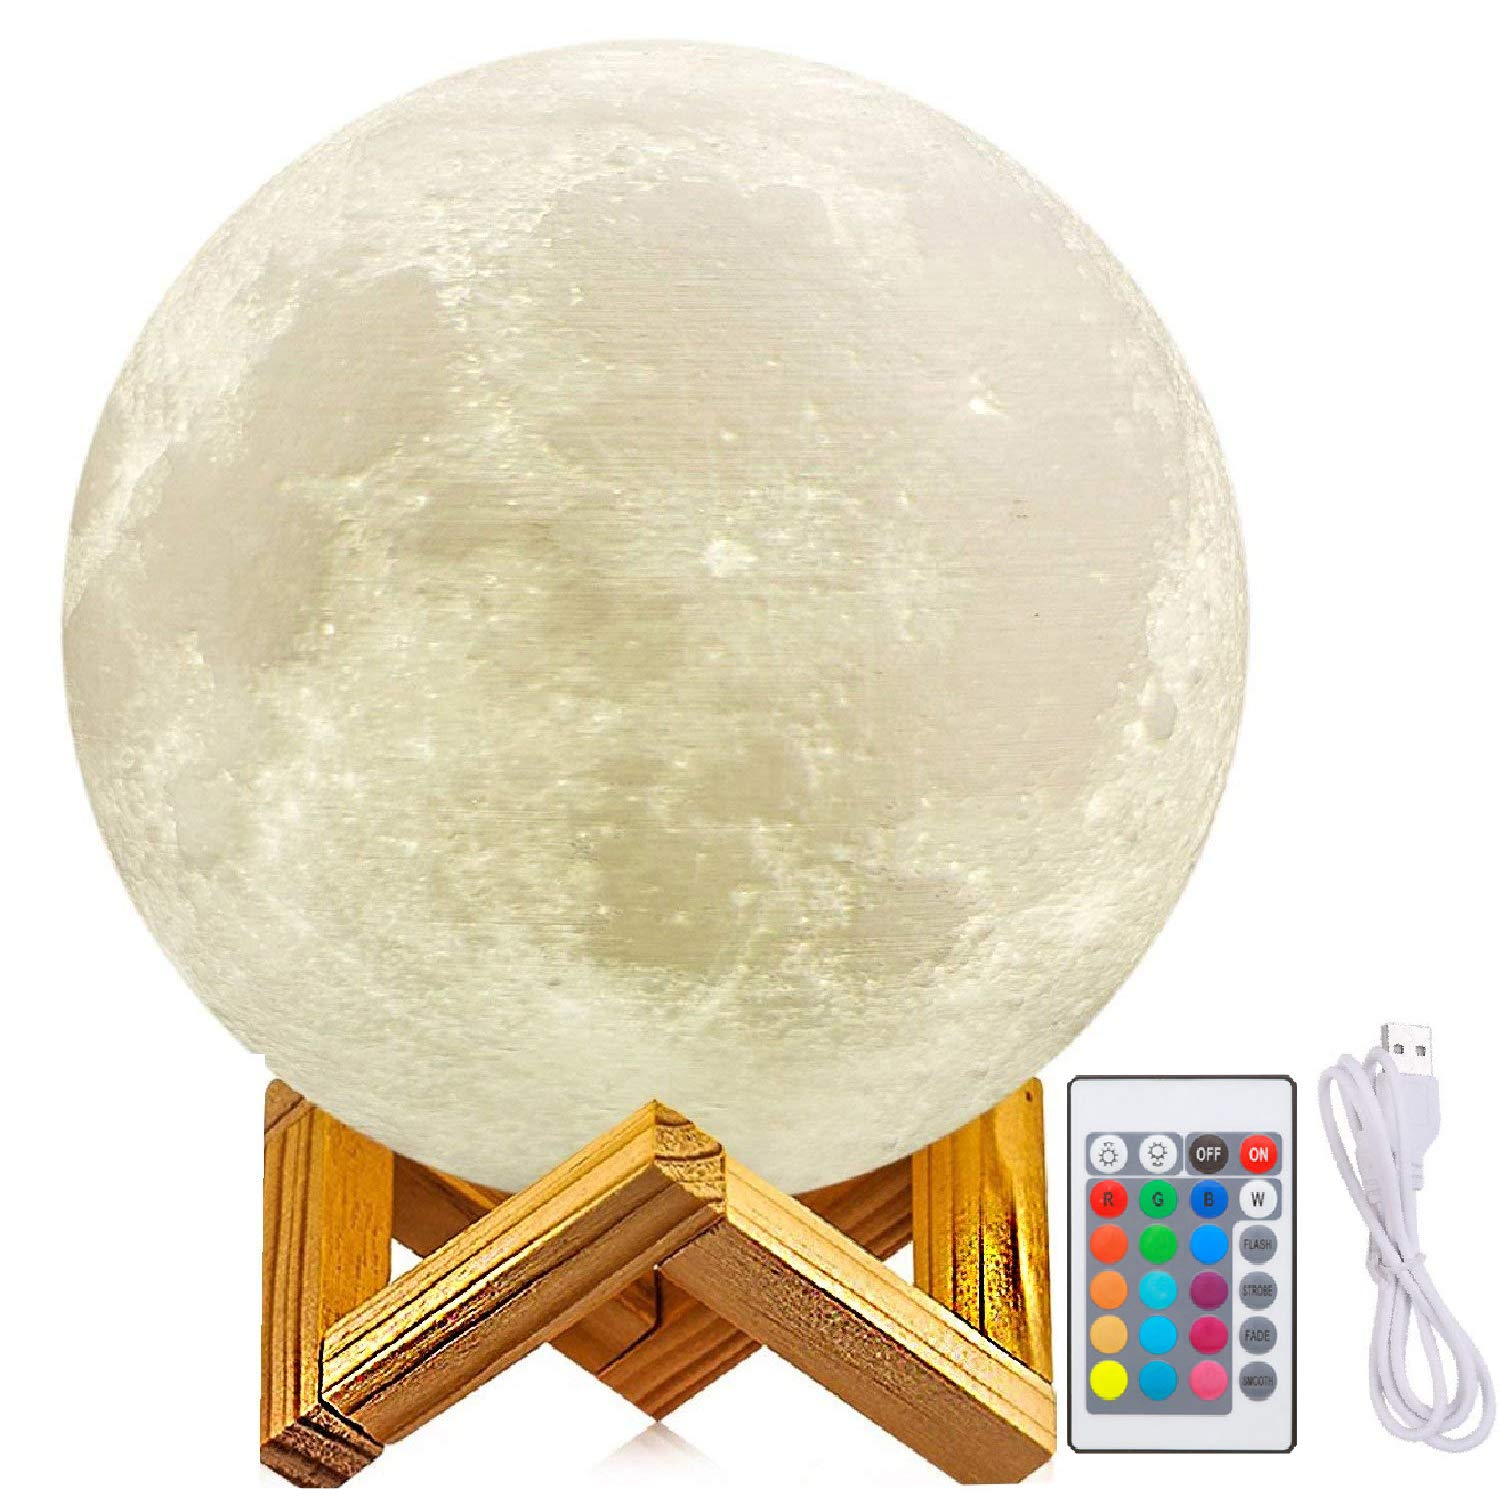 Diameter 6 Inch Moon Light Lamps, 3D Printed Moon Lamp with Stand, The Moon Light with LED Warm White 3000K and Warm Yellow 3000K, Touch Control (6inch——11Inch) zhong guang mei da EML-06